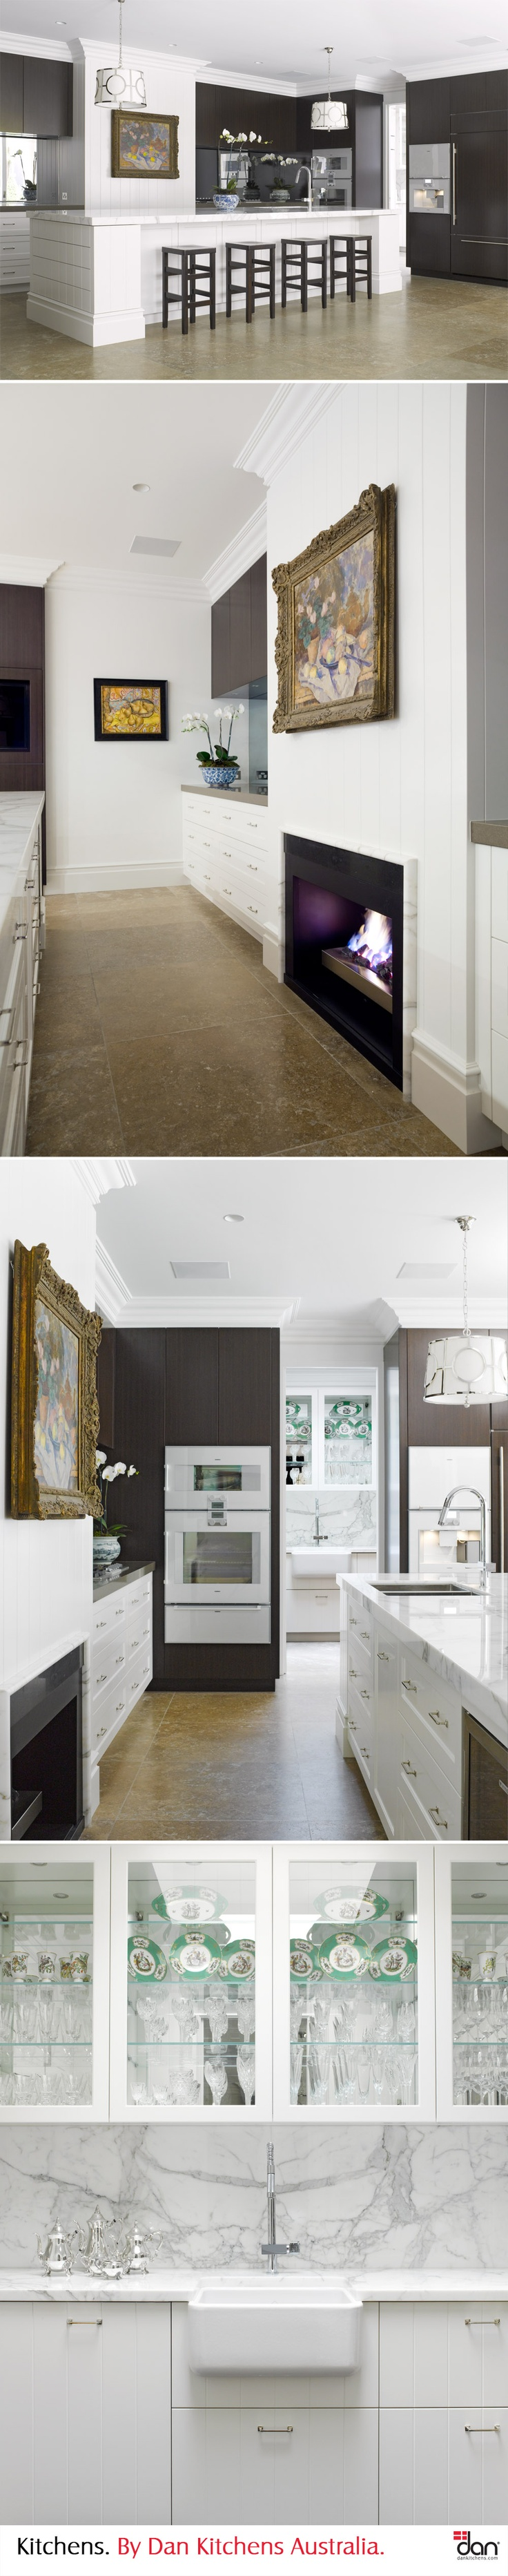 20 best kitchens by dan kitchens images on pinterest joinery tradition meets modern with this design from dan kitchens australia dankitchensaus